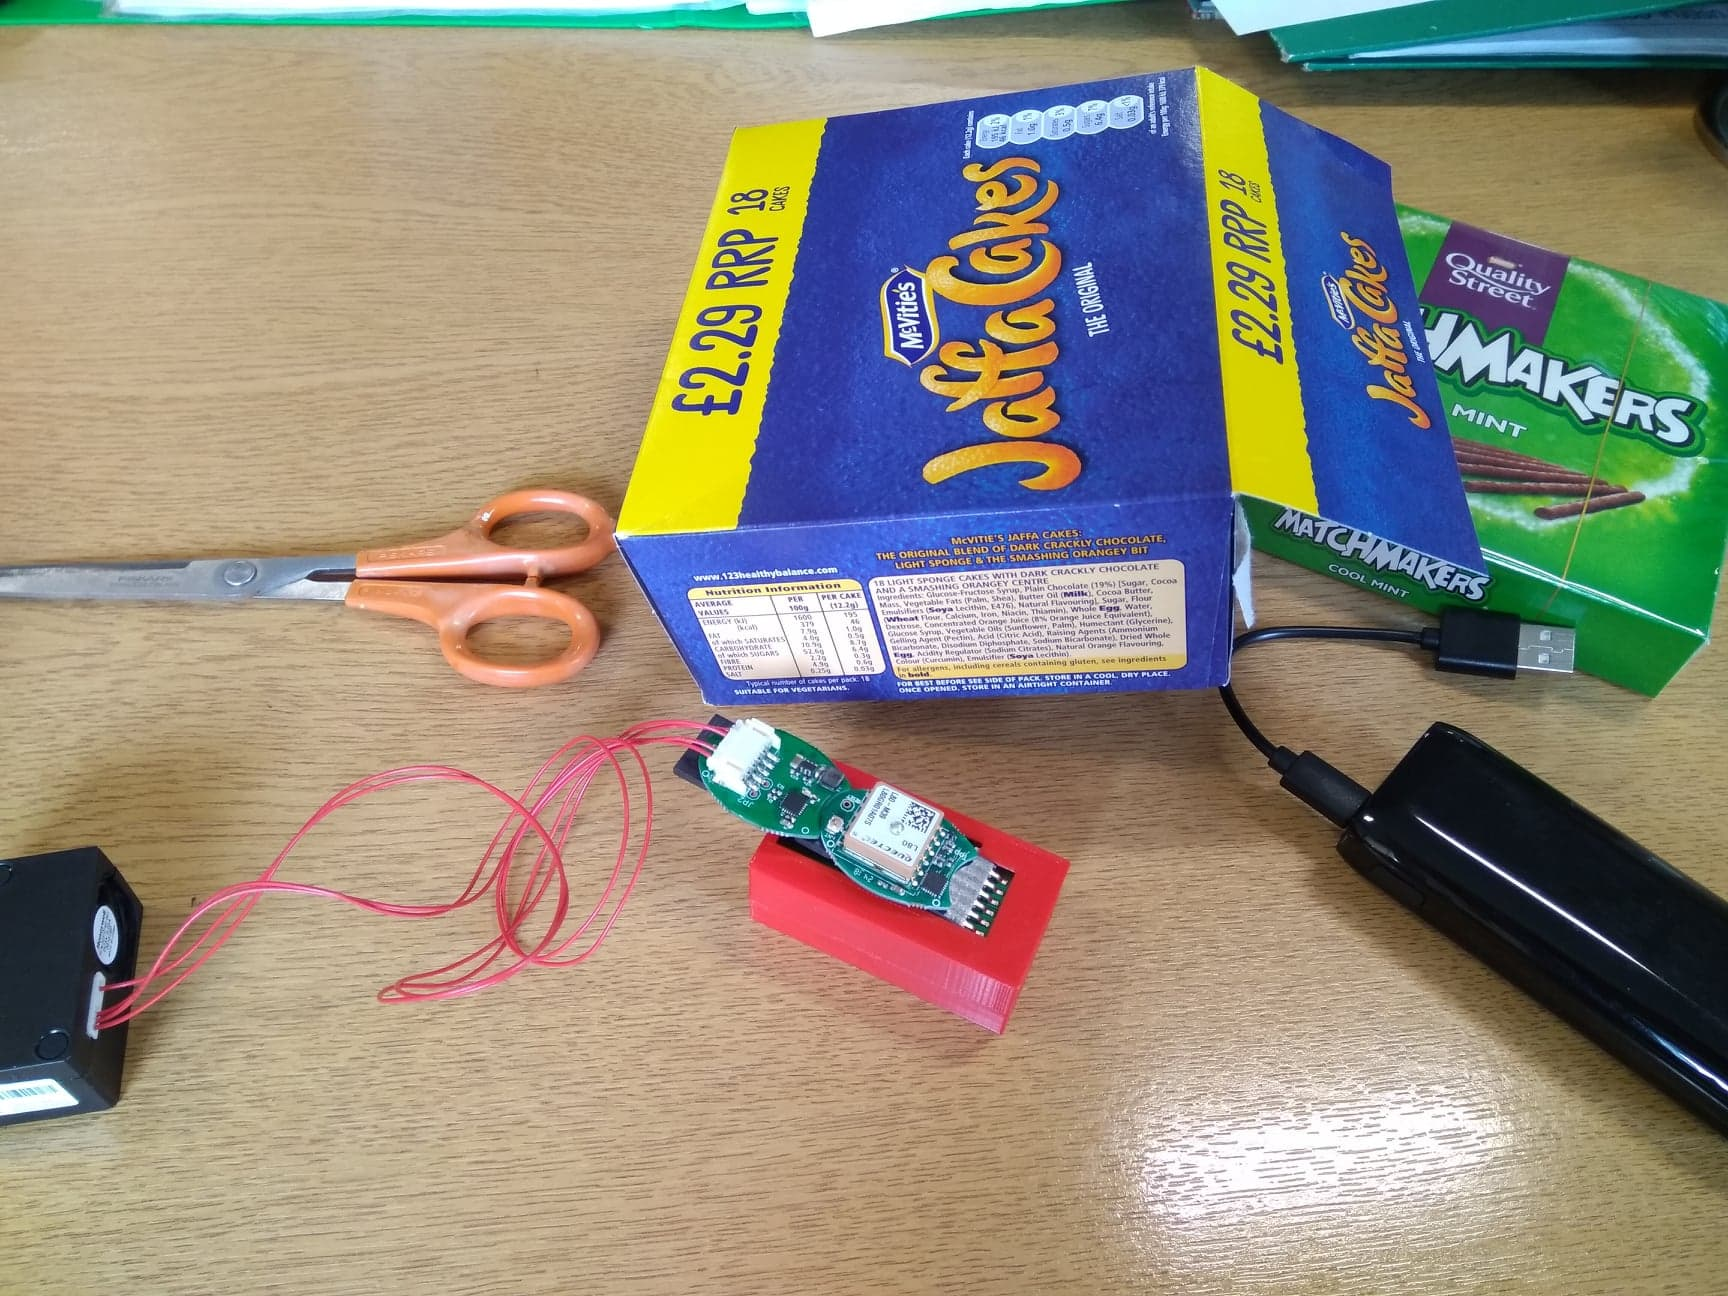 jaffa cake box casing for digital project